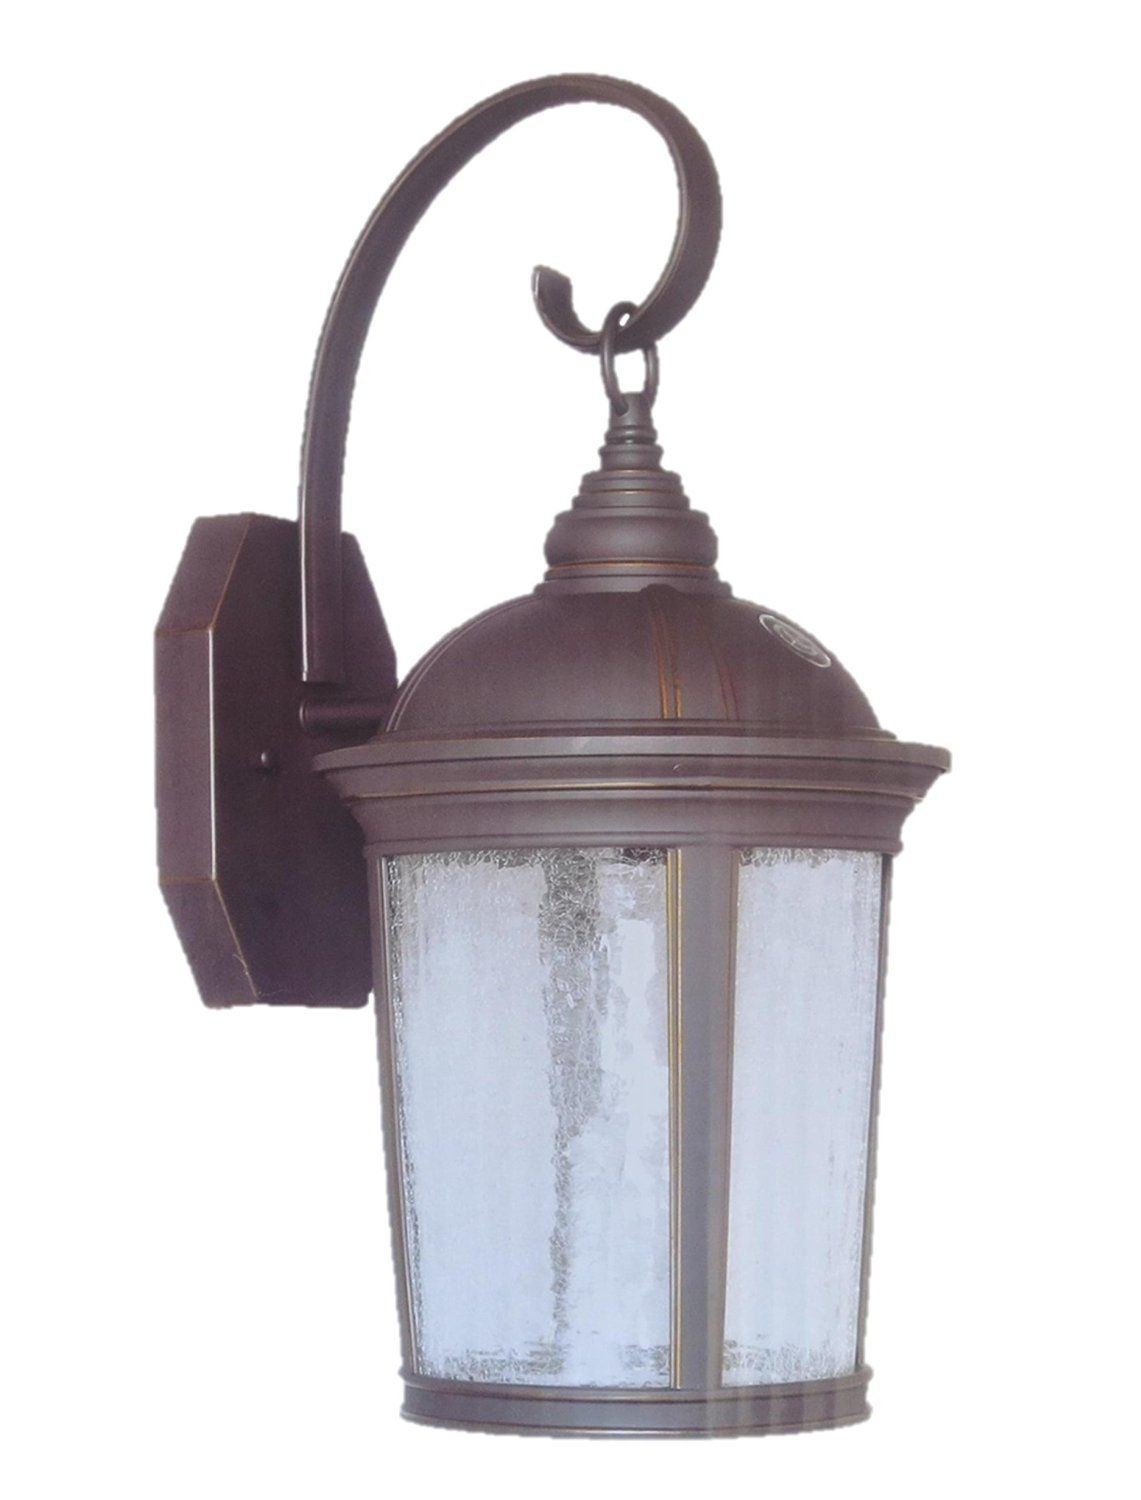 Altair Lighting Outdoor Led Lantern 950 Lumen Led Dusk Dawn With Optional Arm Kit Aged Bronze Patina Fini Led Lantern Led Outdoor Lighting Outdoor Lighting